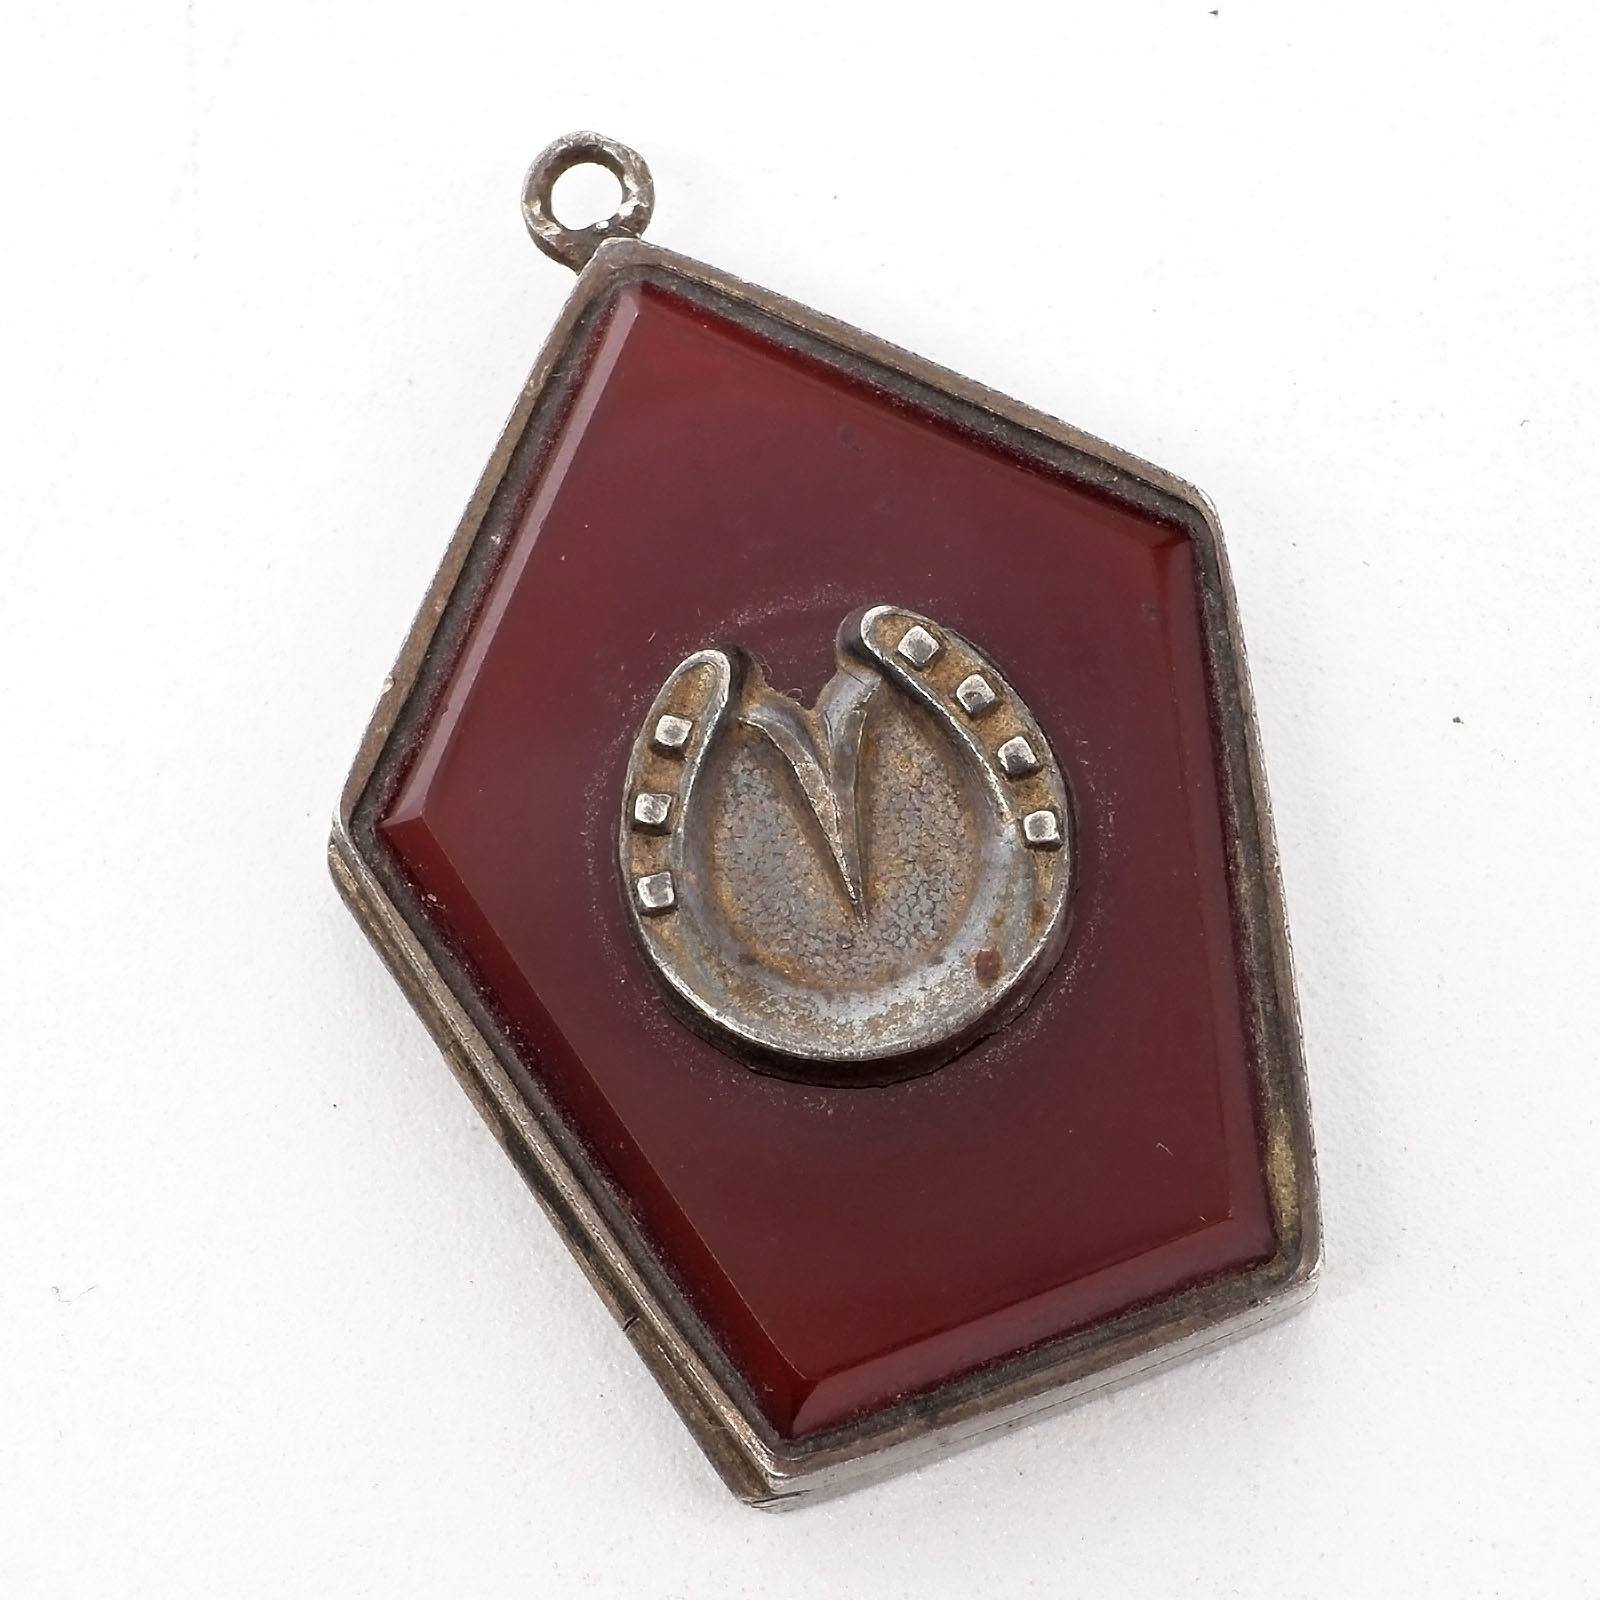 'Victorian Sterling Silver Hinged Locket with Agate and Horse Shoe Insert, Birmingham, Michael Joseph Goldsmith, 1884'